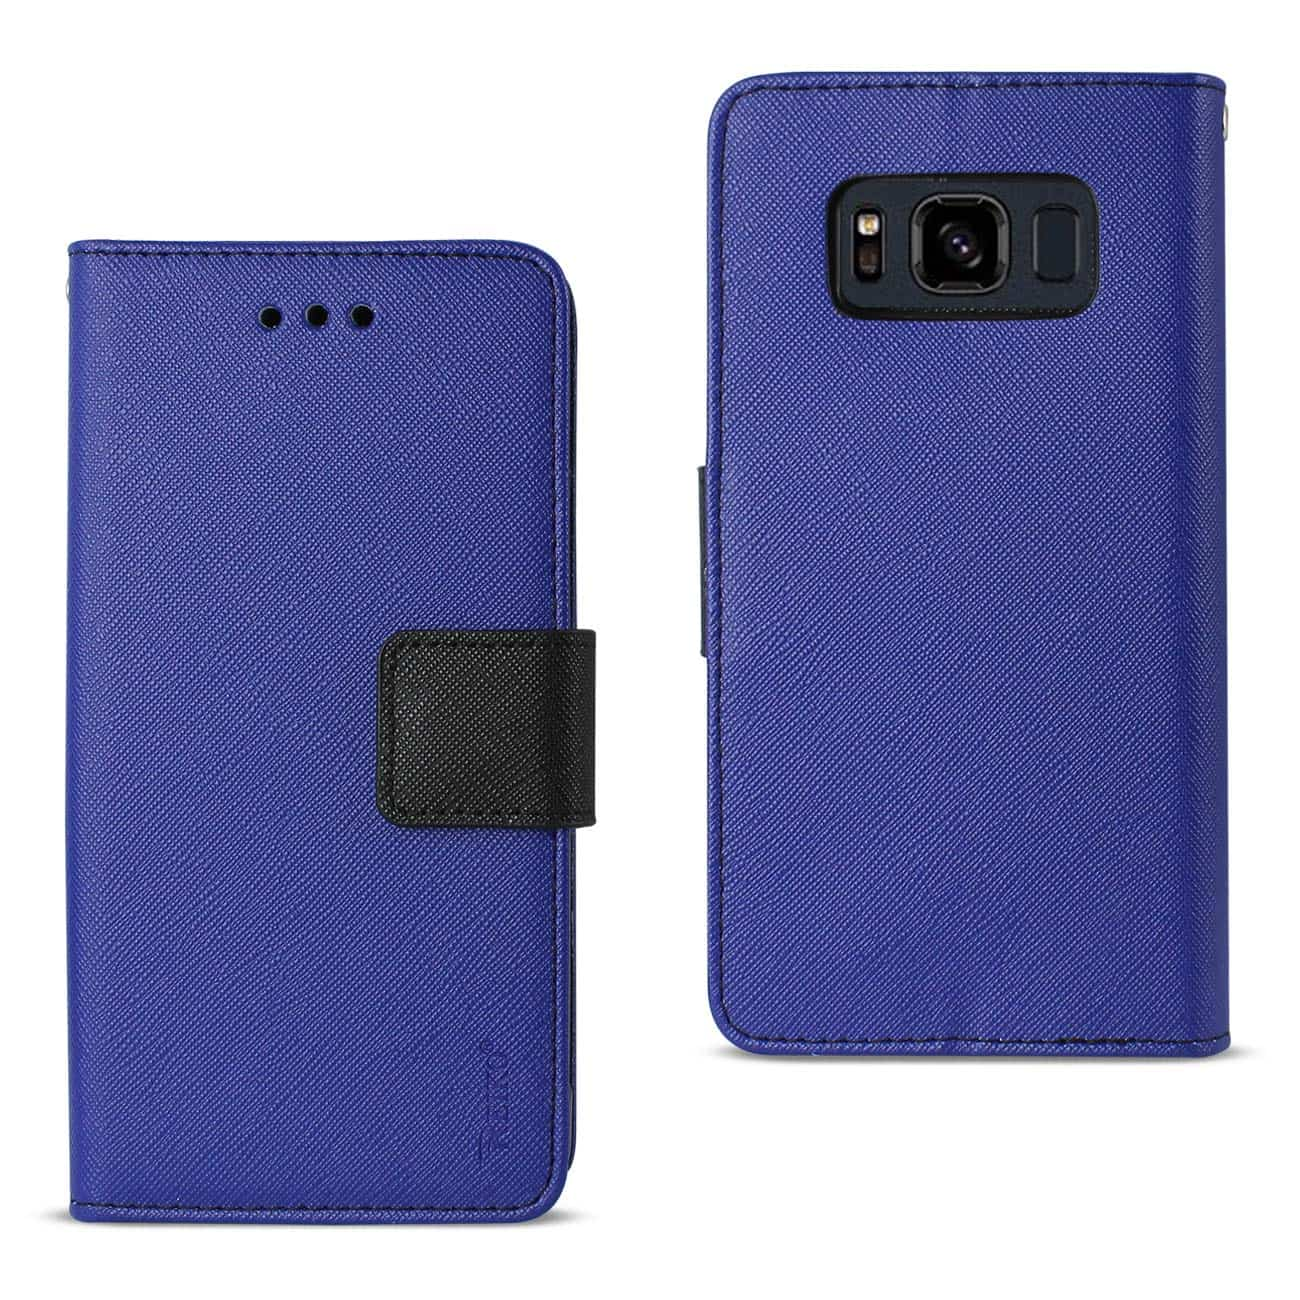 SAMSUNG GALAXY S8 ACTIVE 3-IN-1 WALLET CASE IN NAVY